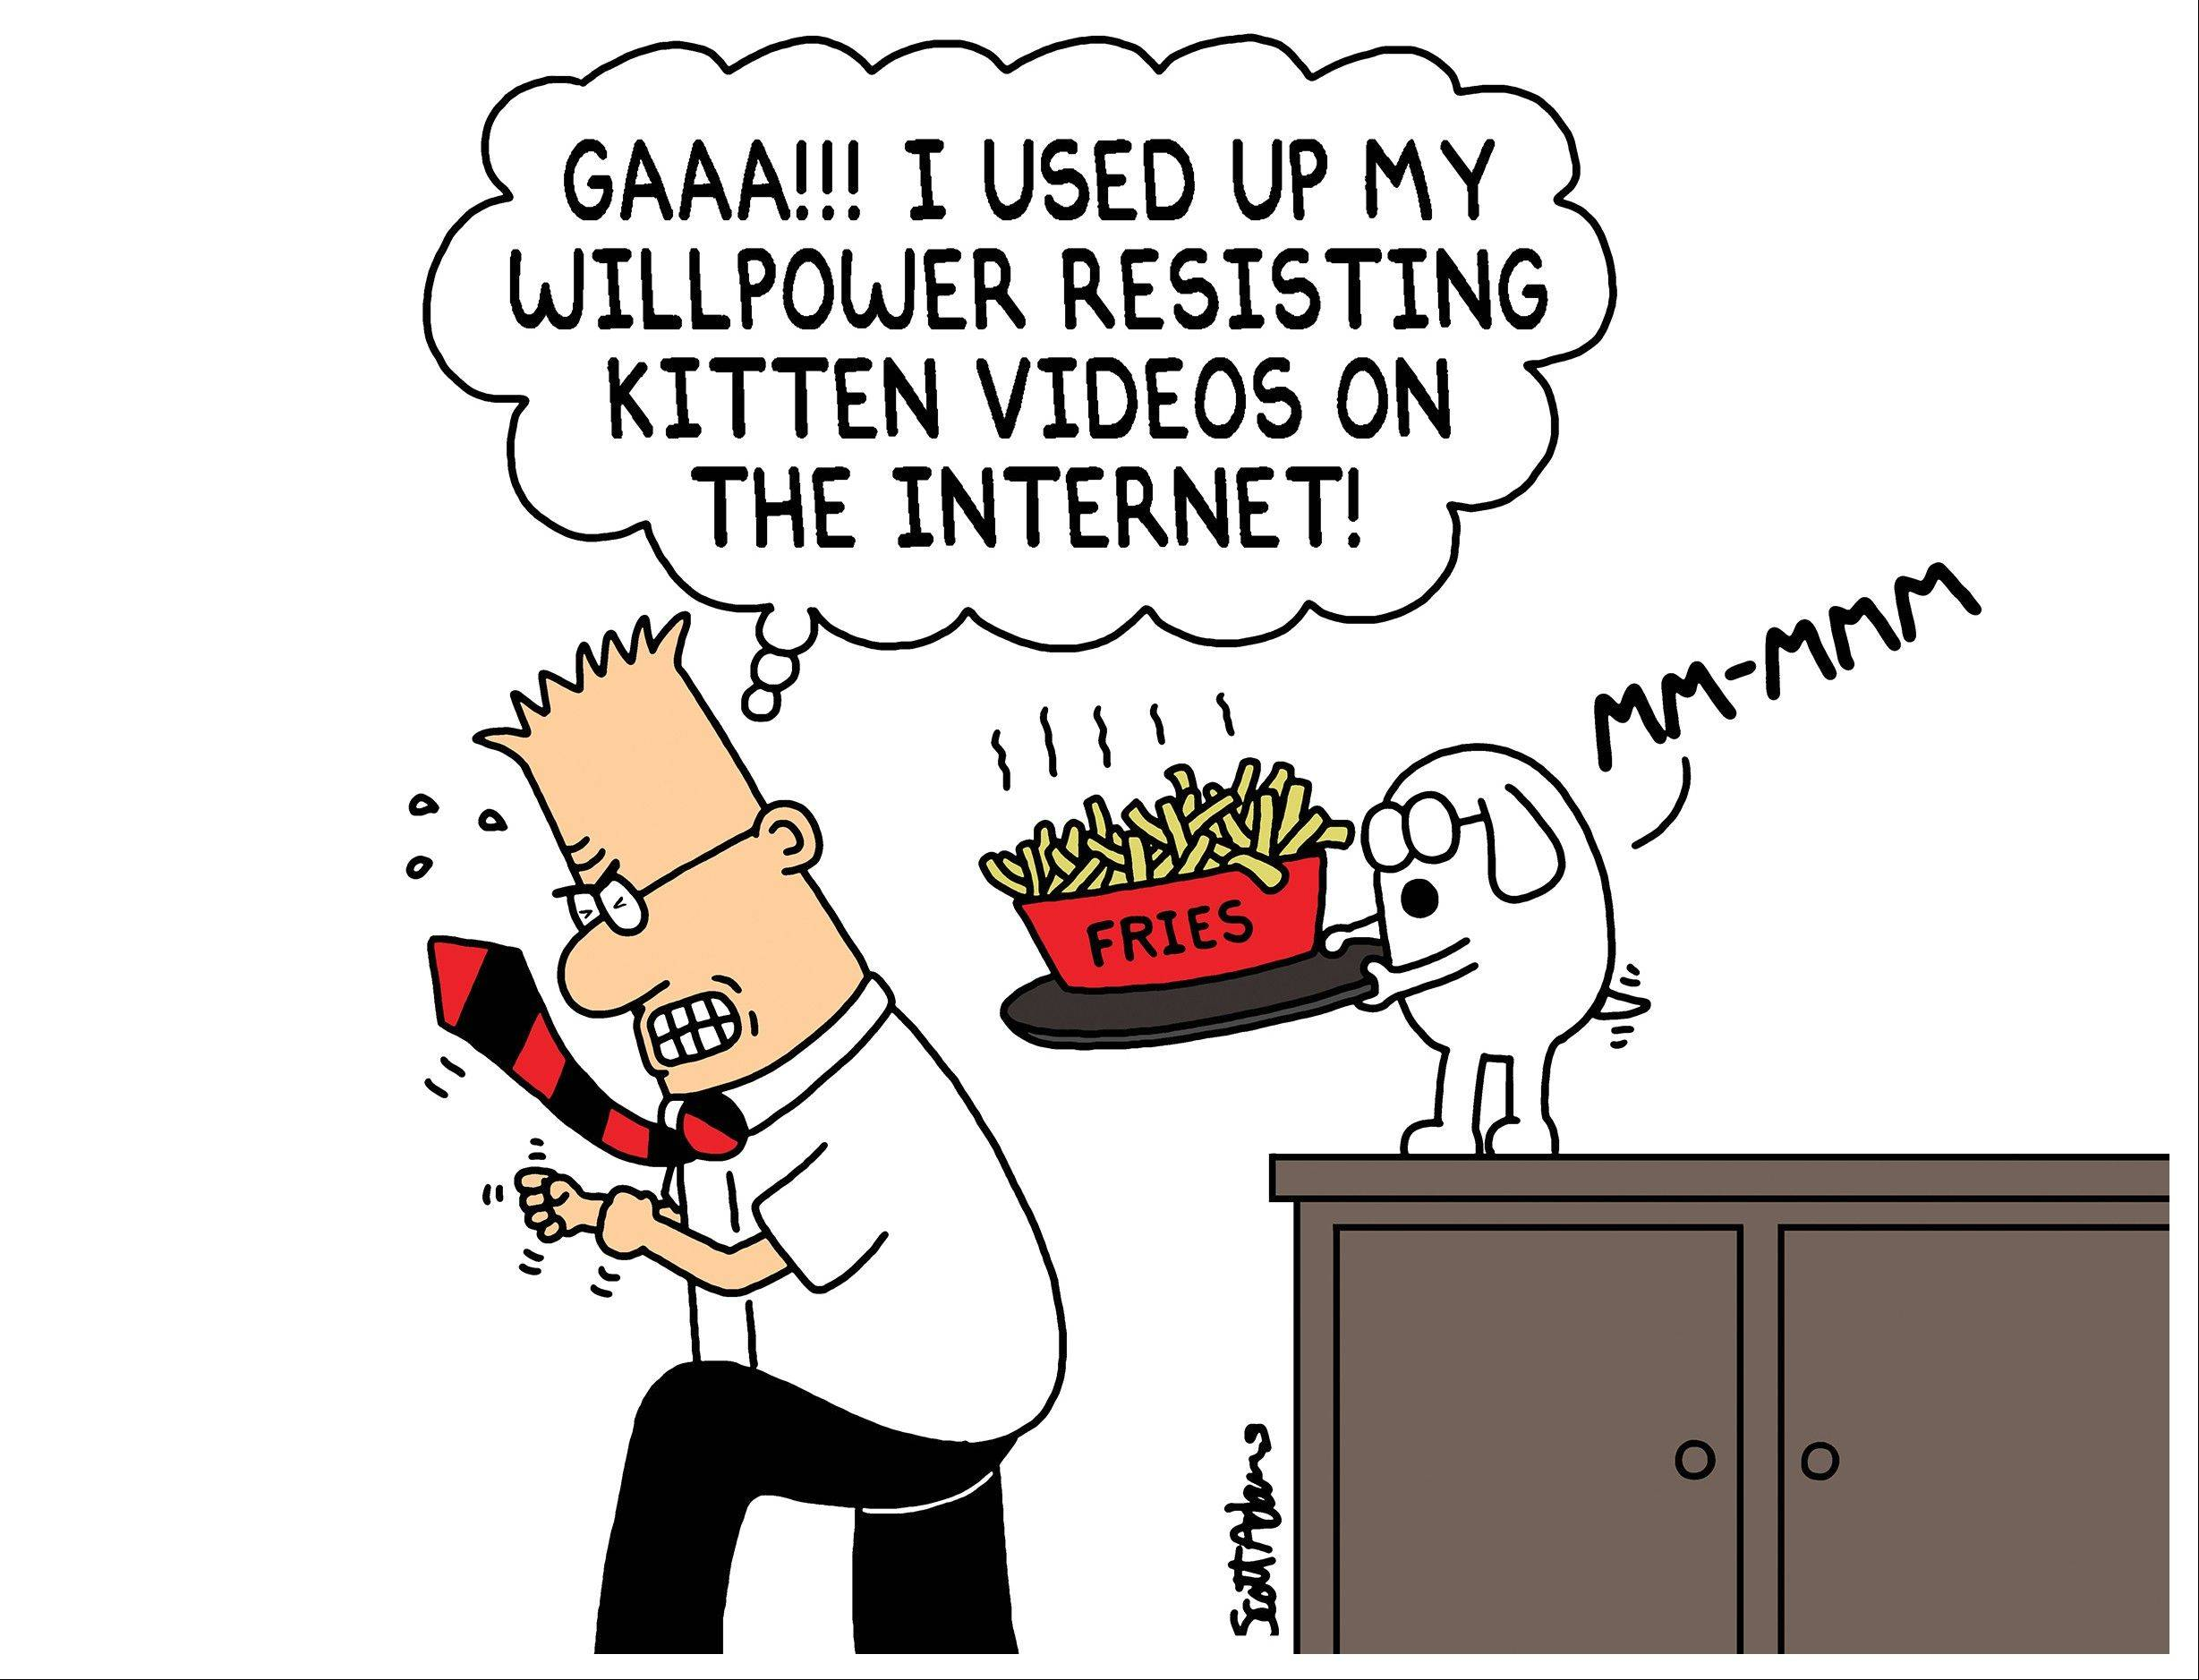 �Dilbert� creator Scott Adams writes that studies show that using willpower in one area diminishes how much willpower you have in reserve for other areas. Instead, you can usually replace willpower with knowledge.